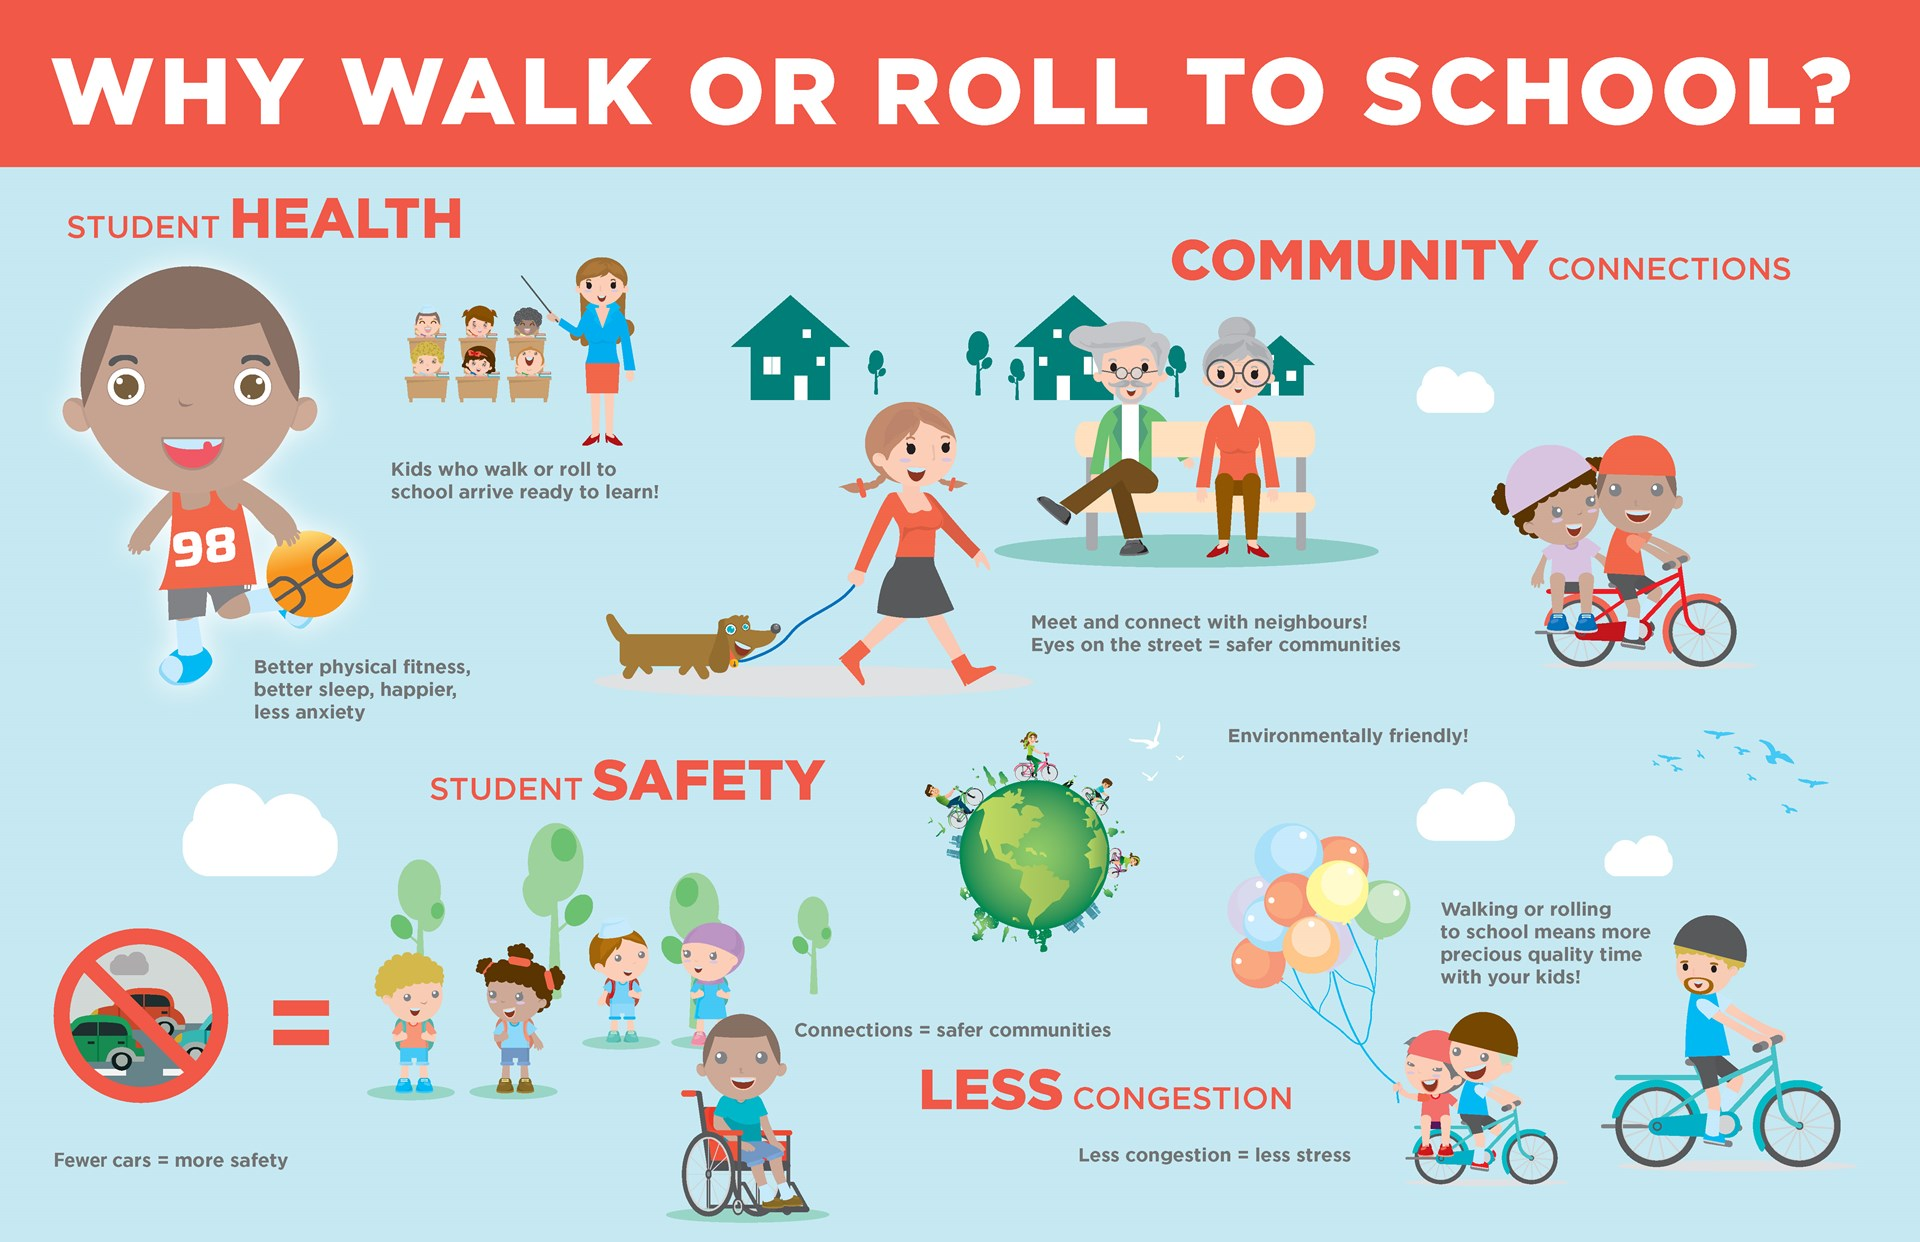 Why walk or roll to school?